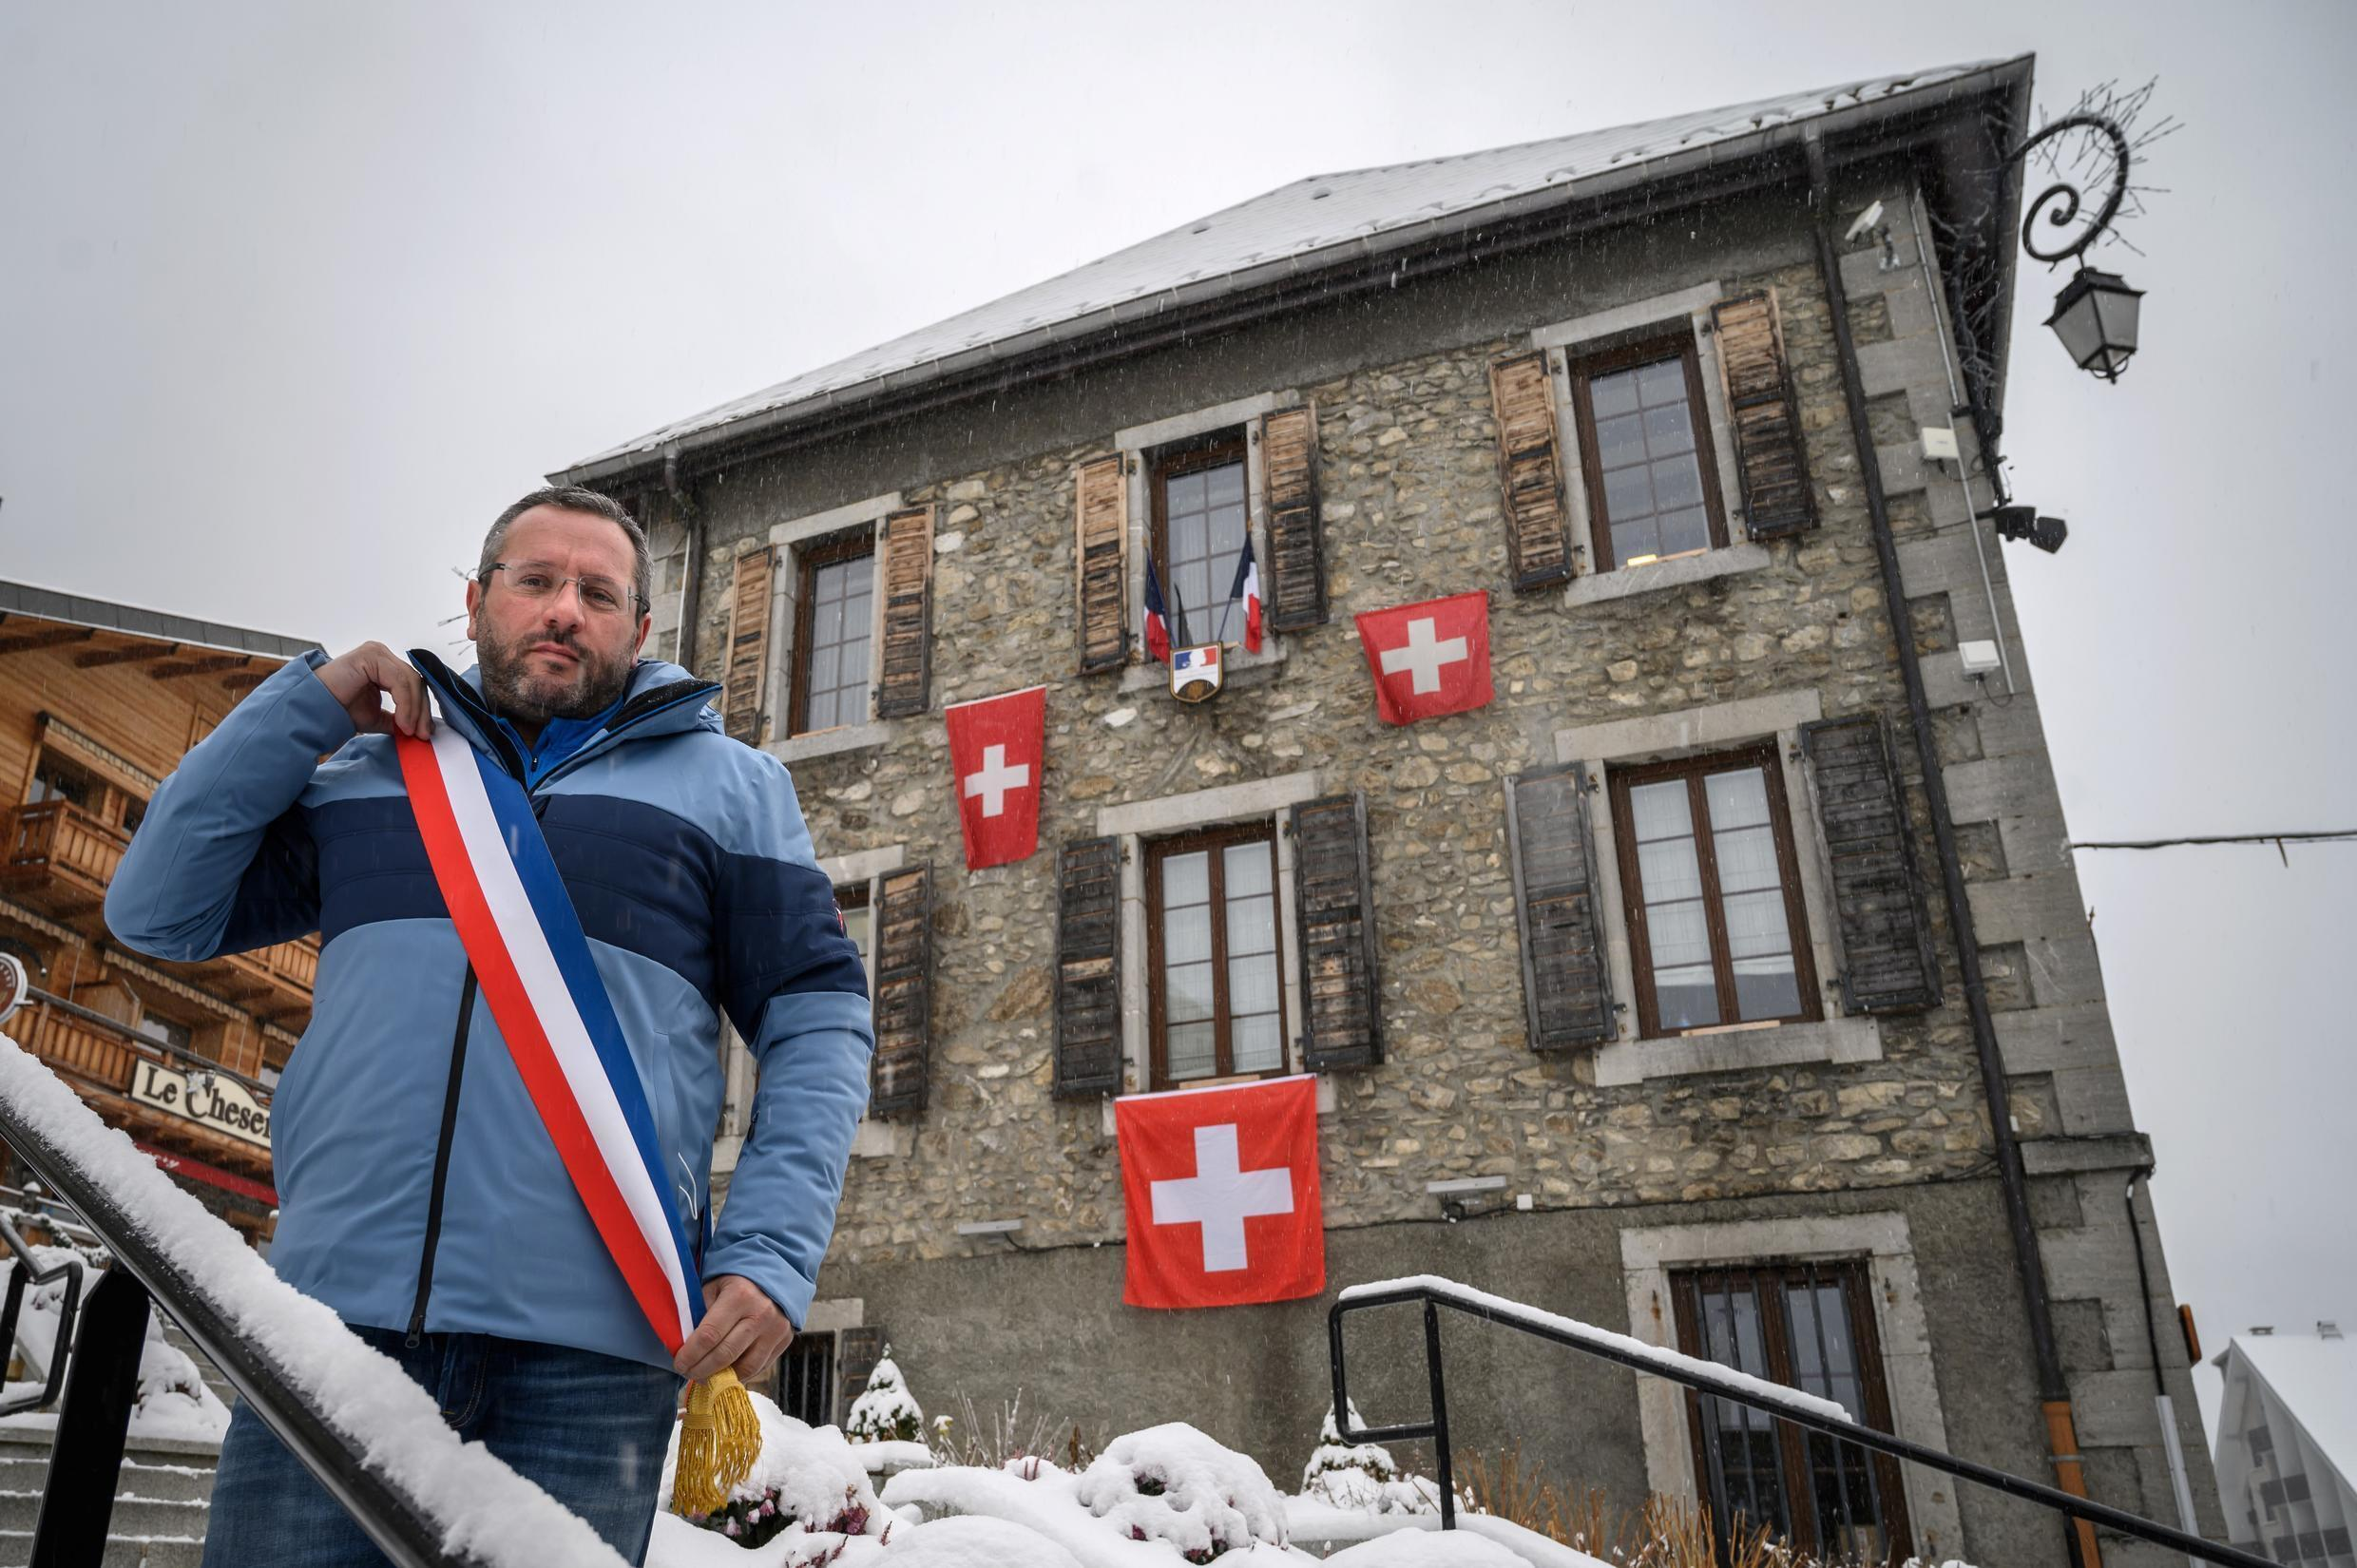 Nicolas Rubin, the mayor of Châtel, has draped his town hall in Swiss flags in protest at France's decision to close ski lifts while resorts across the border remain open.